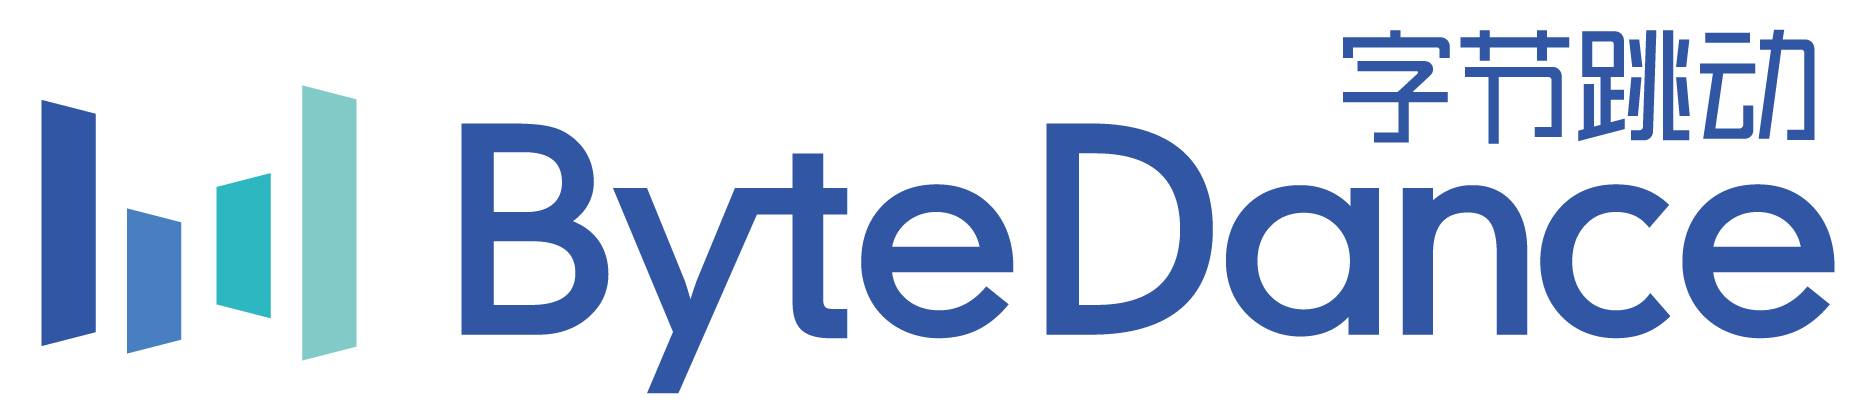 Bytedance logo transparent